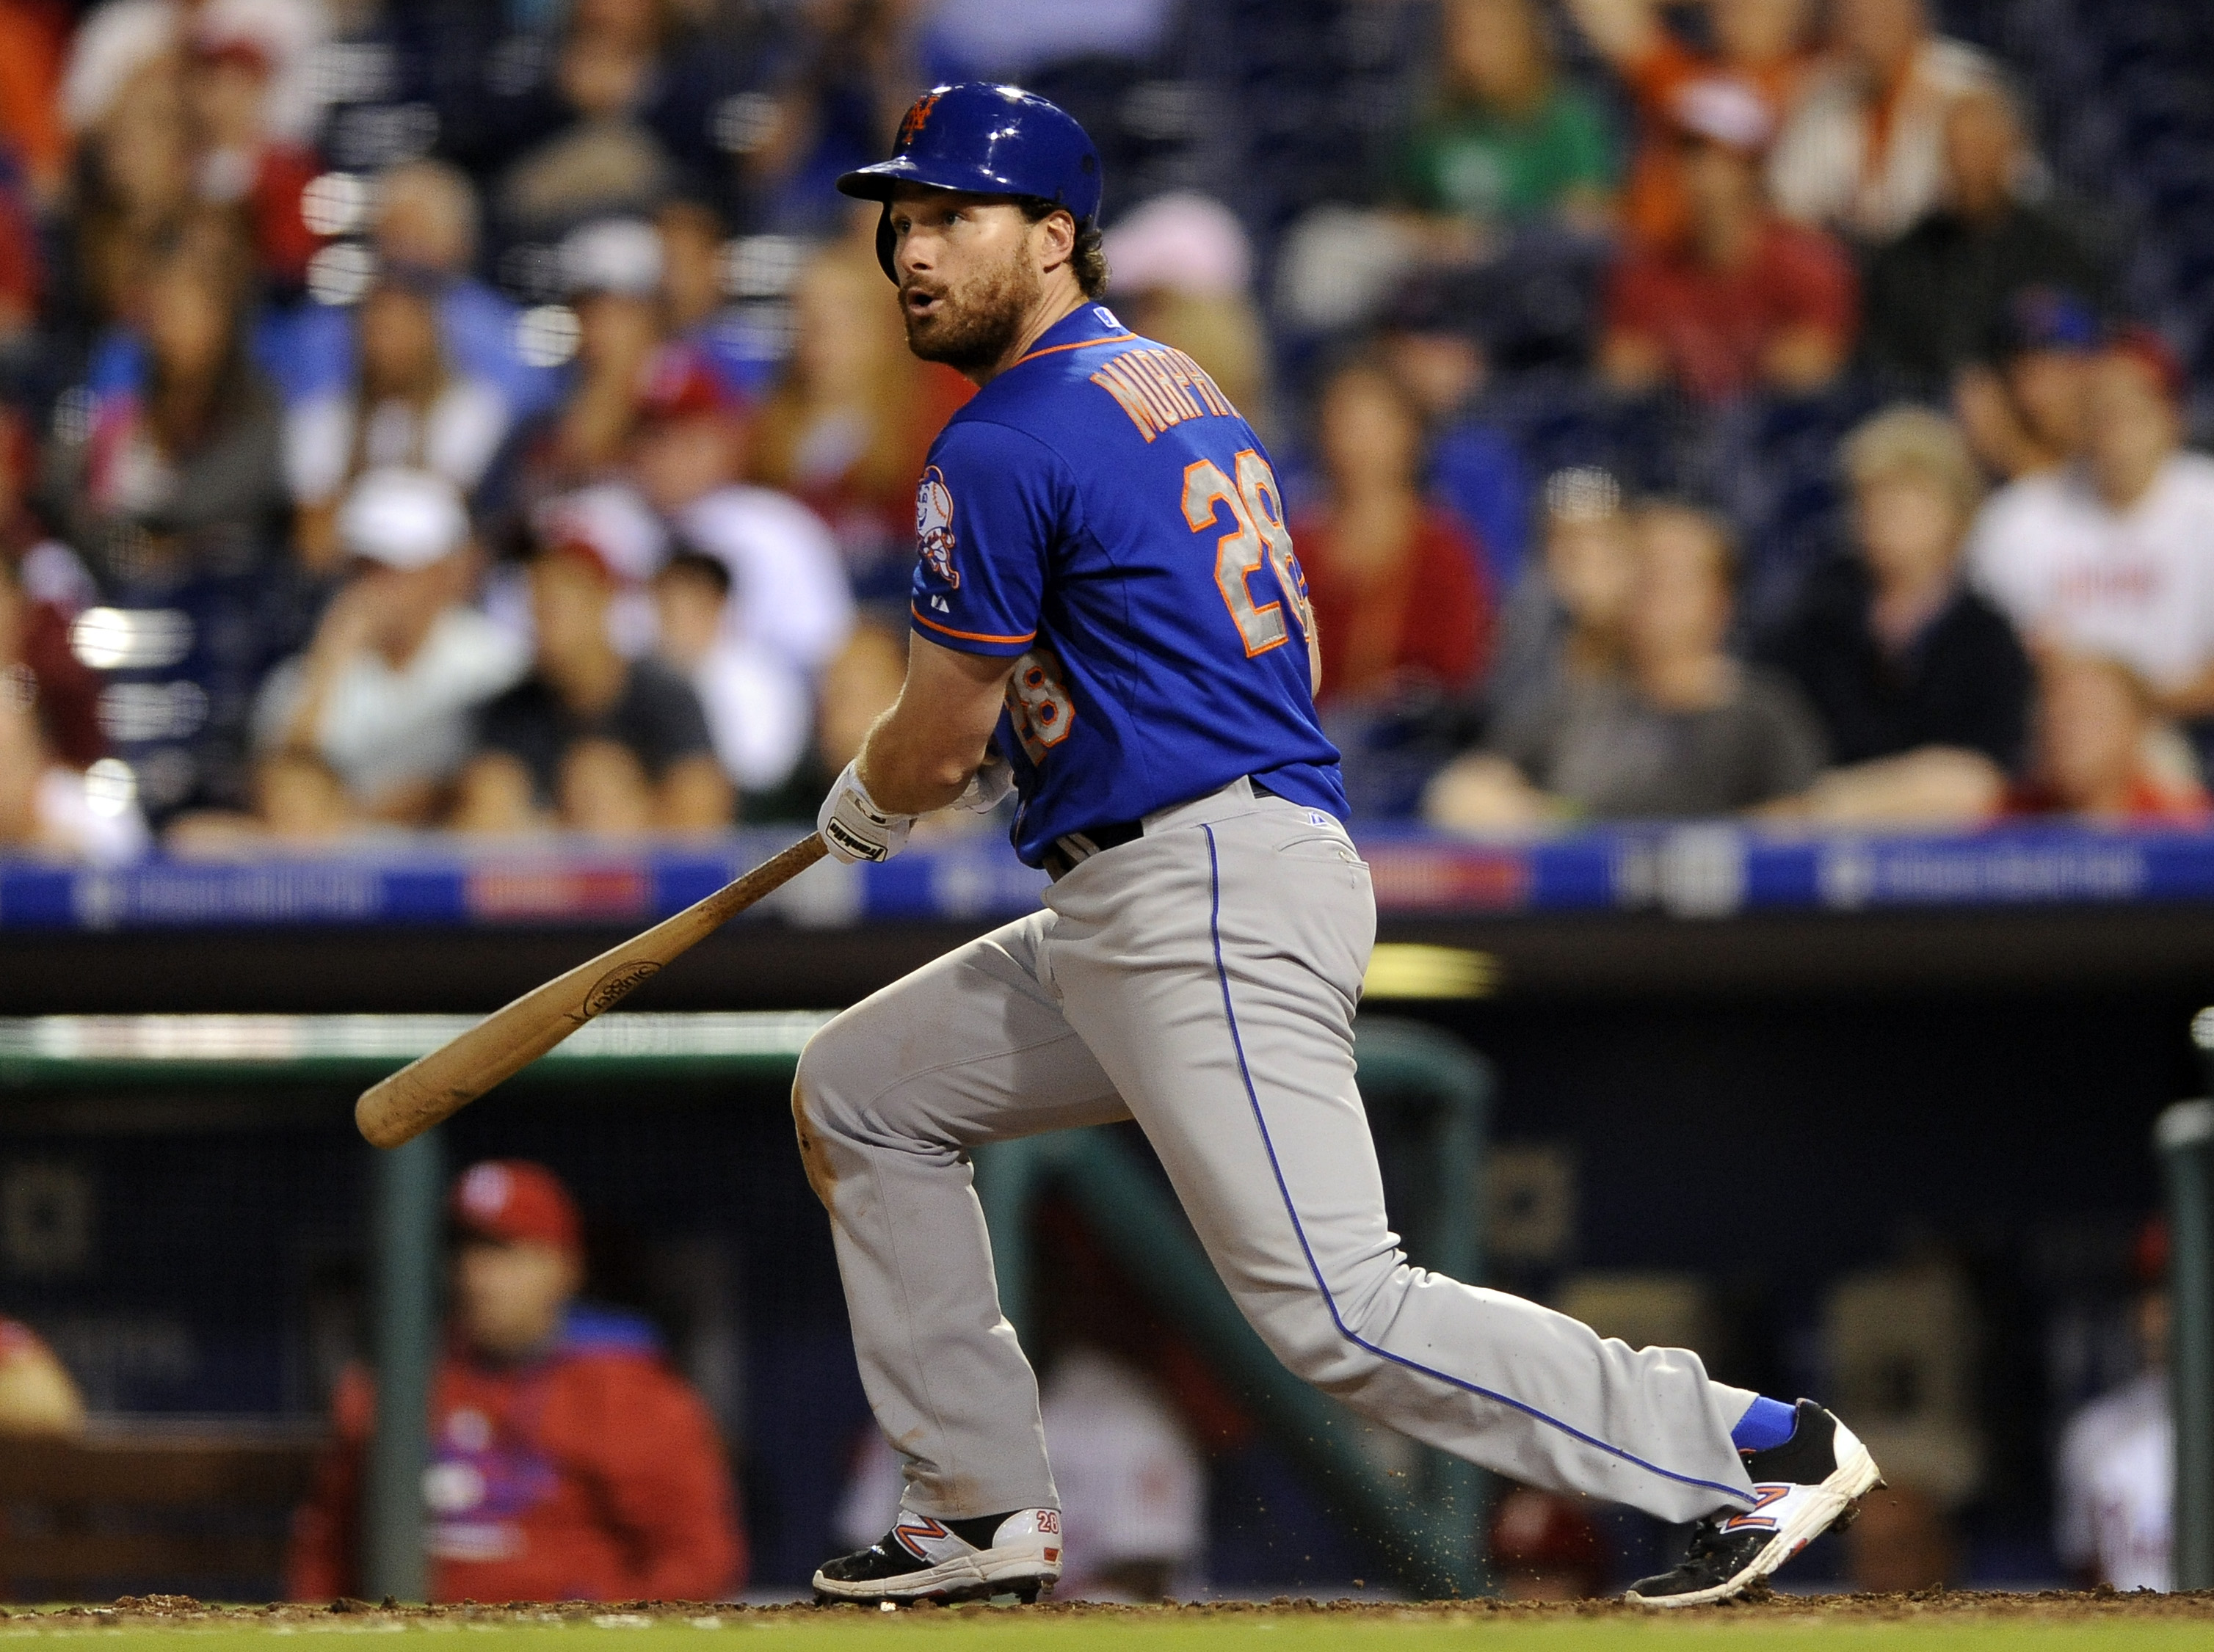 New York Mets' Daniel Murphy watches a two-run double in the 13th inning of a baseball game against the Philadlephia Phillies, Thursday, Aug. 27, 2015, in Philadelphia. The Mets won 9-5. (AP Photo/Michael Perez)